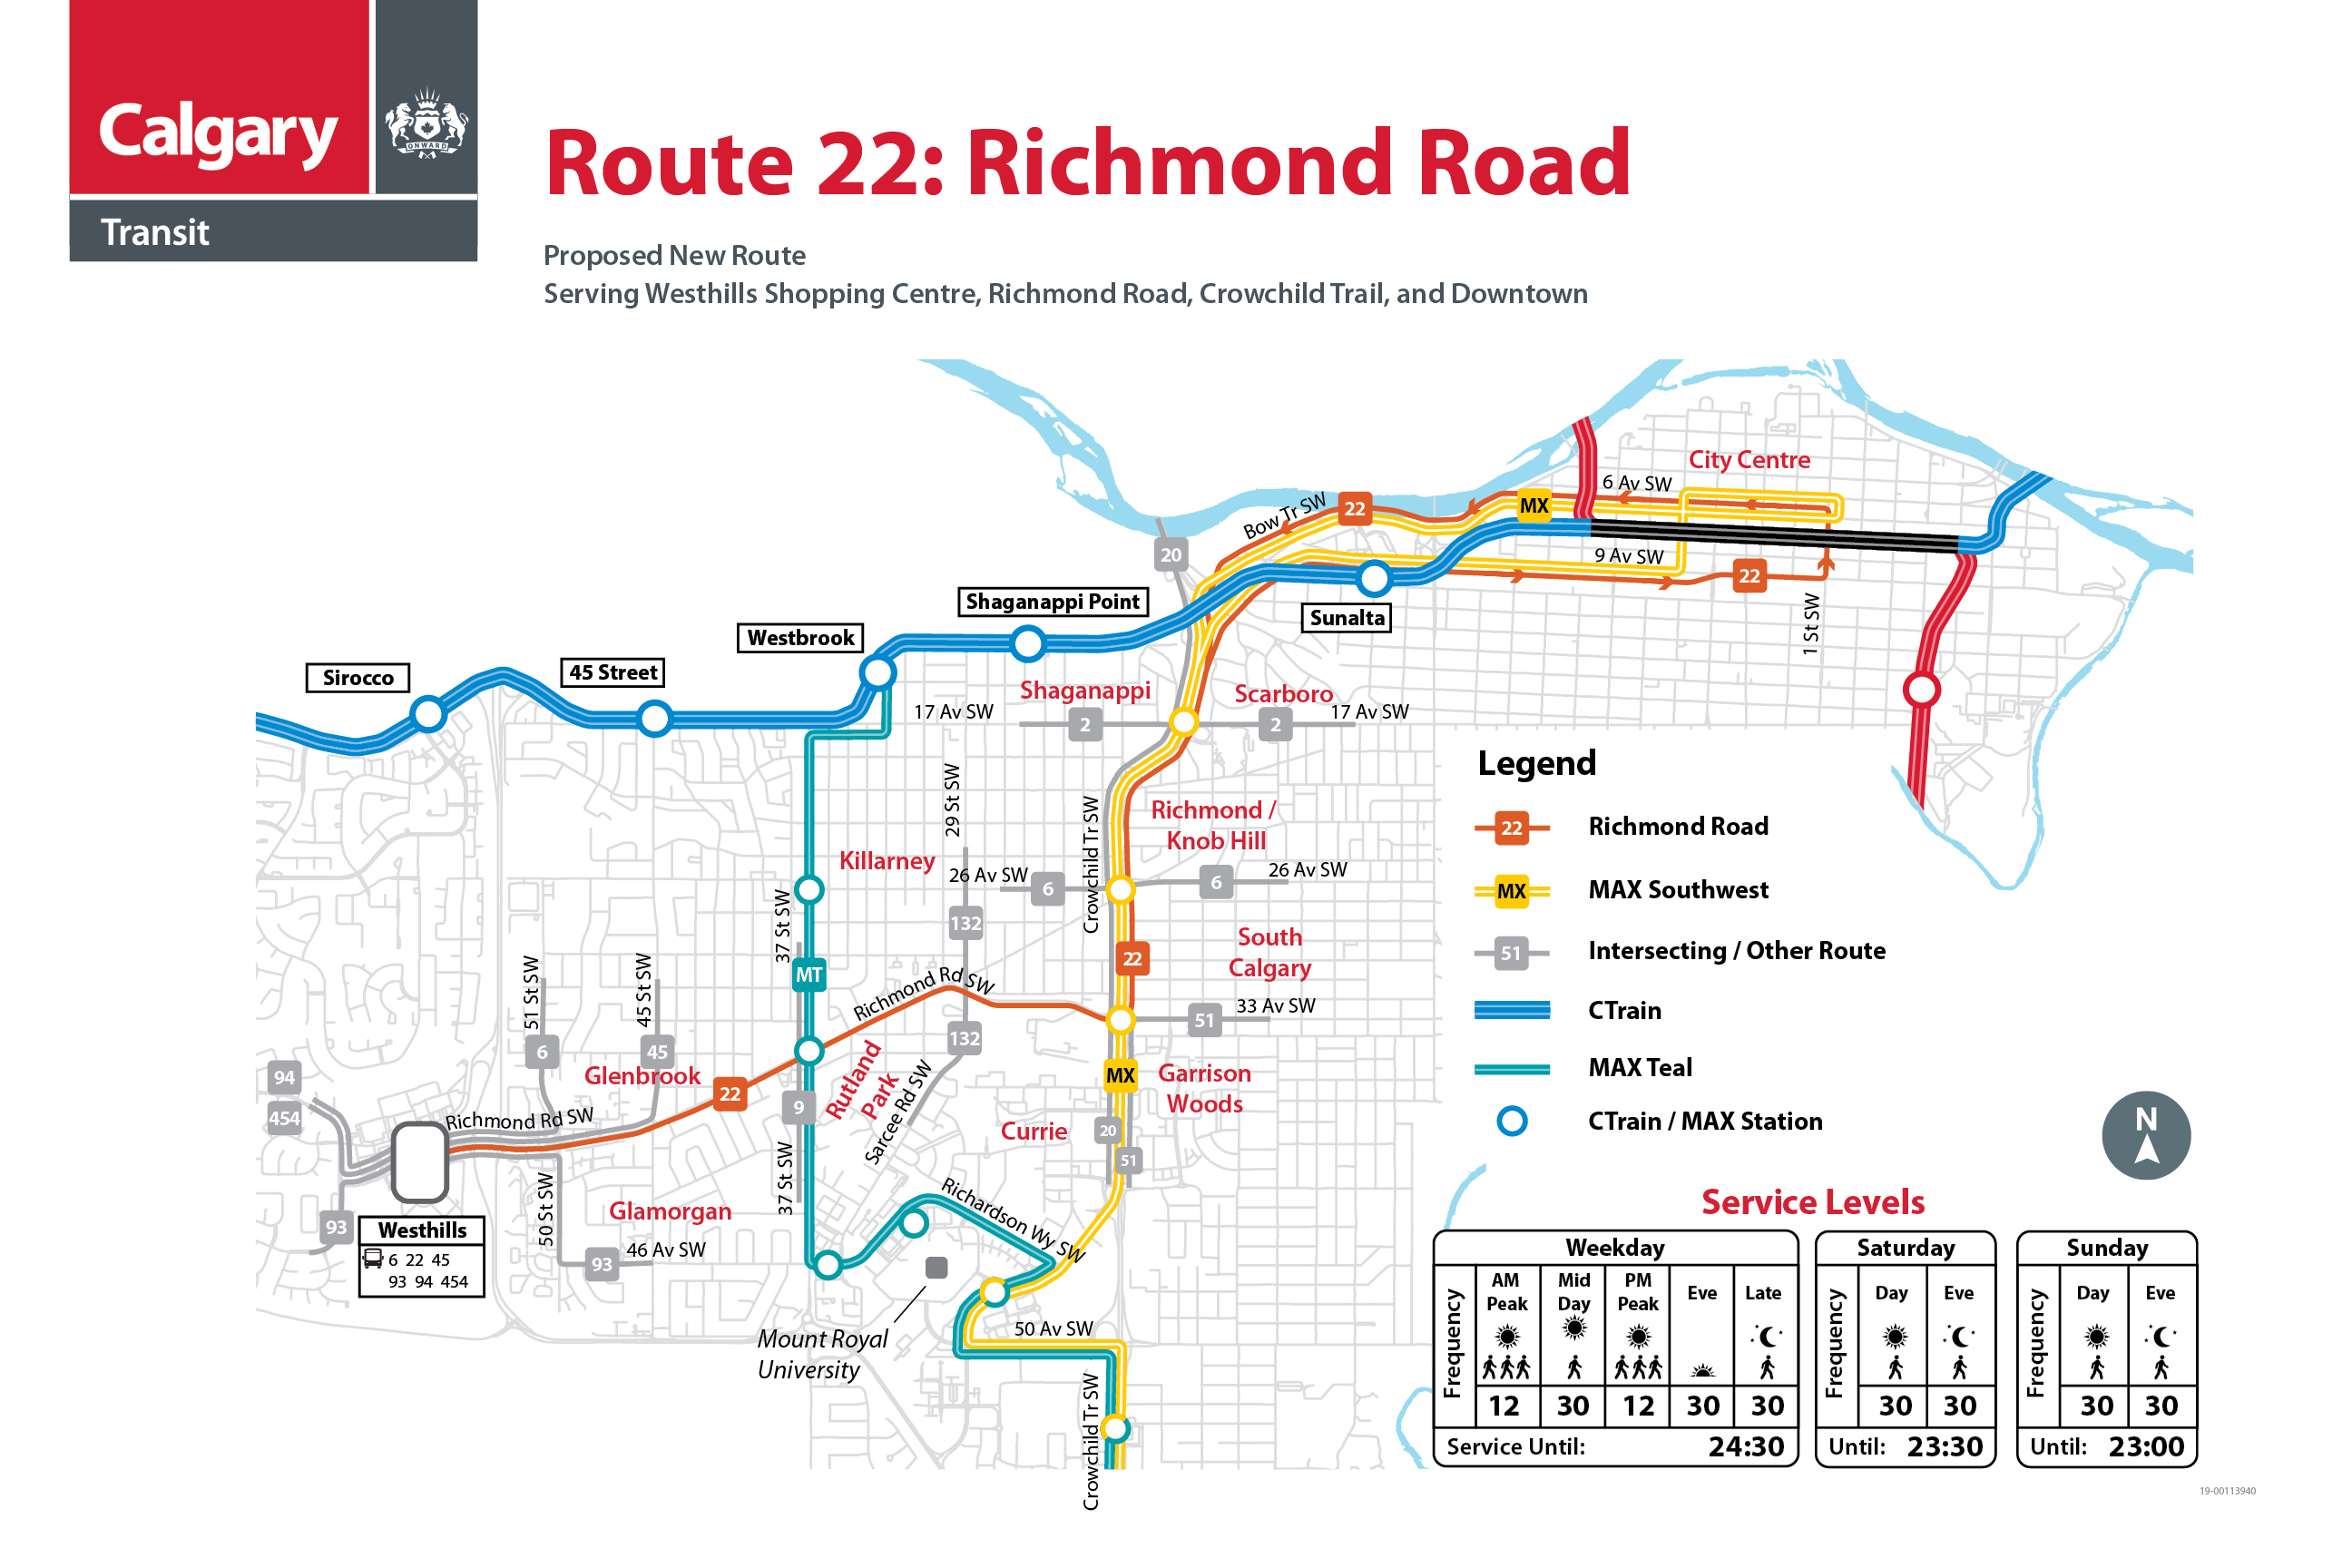 Proposed Changes to Route 22